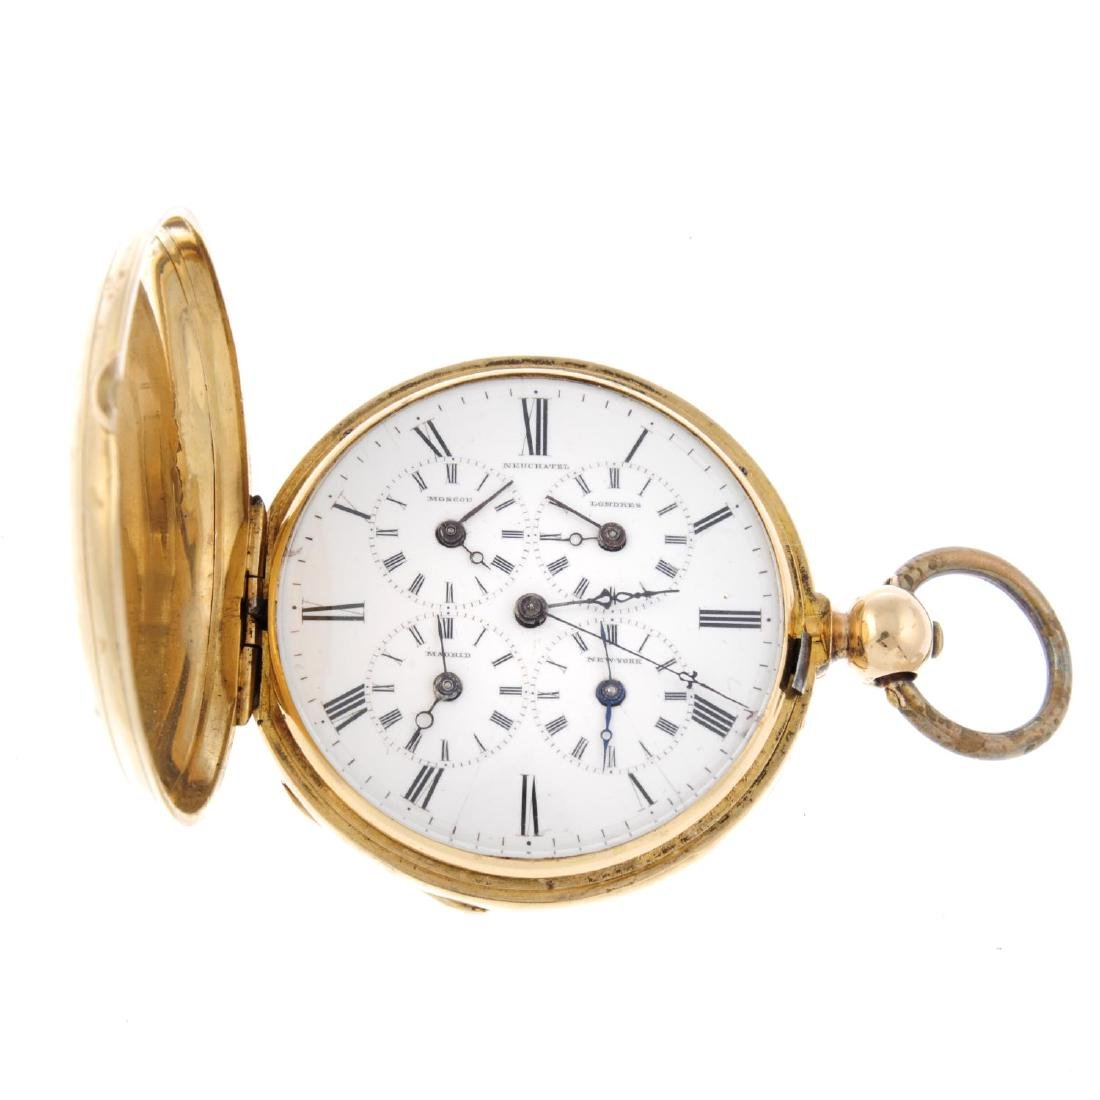 A full hunter five time-zone pocket watch by Neuchatel.